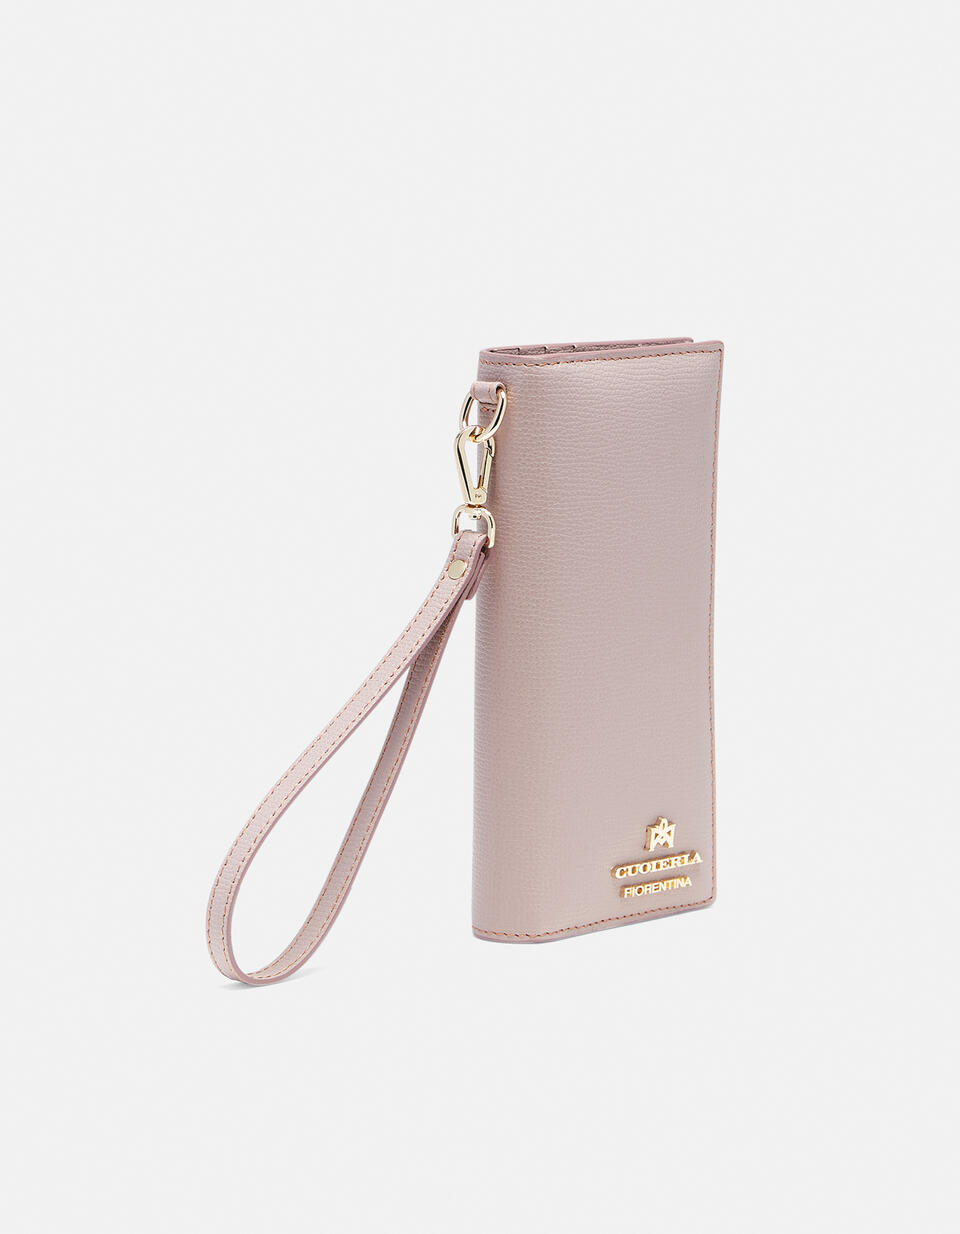 Vertical credit card holder withcoin case and zip Cloud CIPRIA Cuoieria Fiorentina